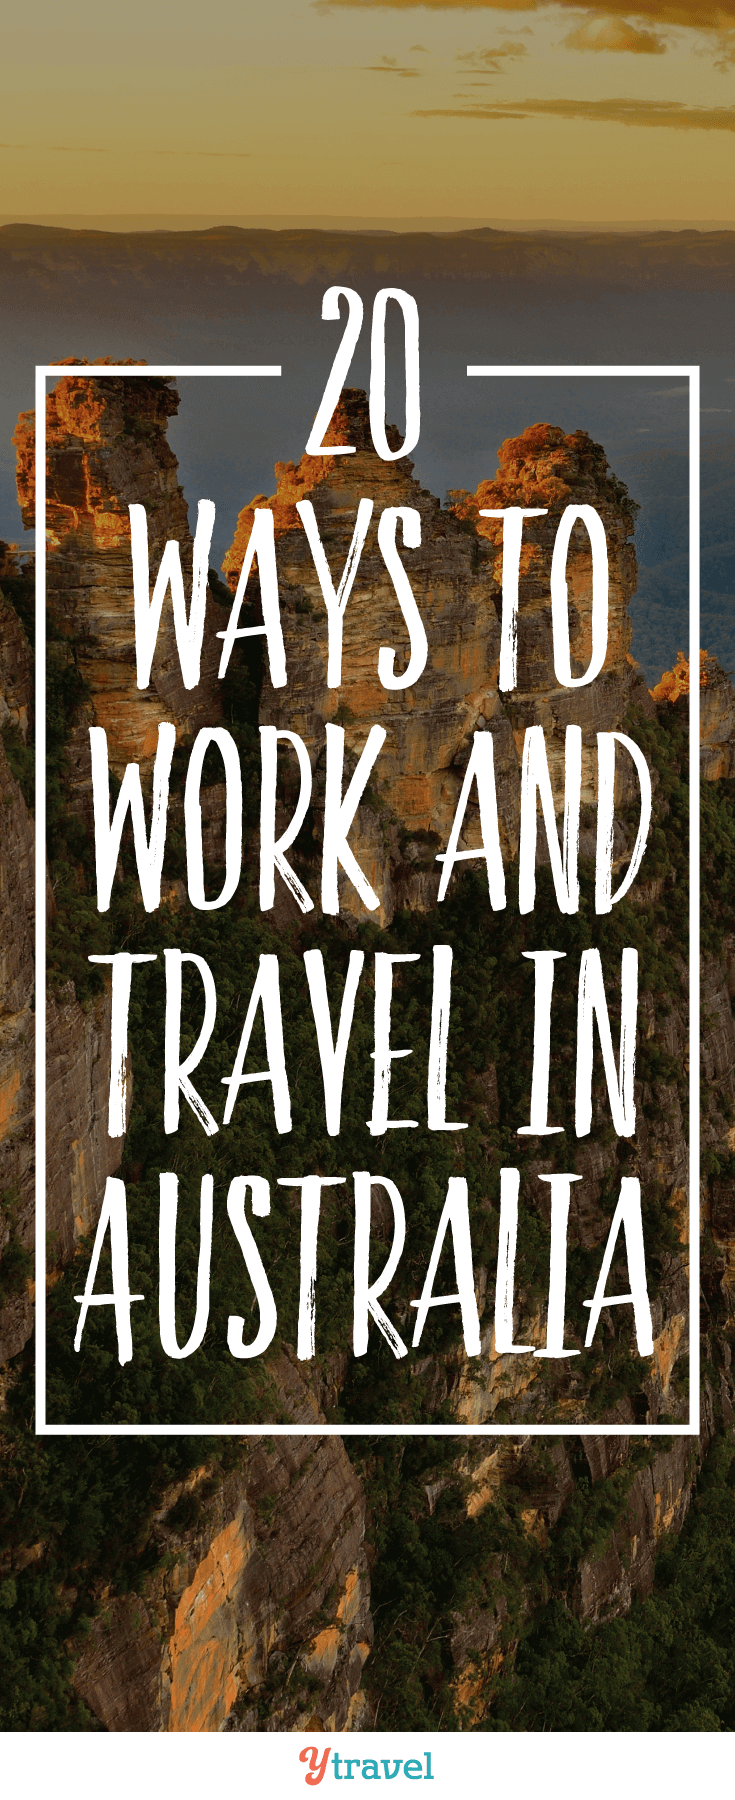 Traveling in Australia can be hard on the pocketbook. We've come up with 20 ways to work and travel in Australia that can help turn your travel dreams into reality.